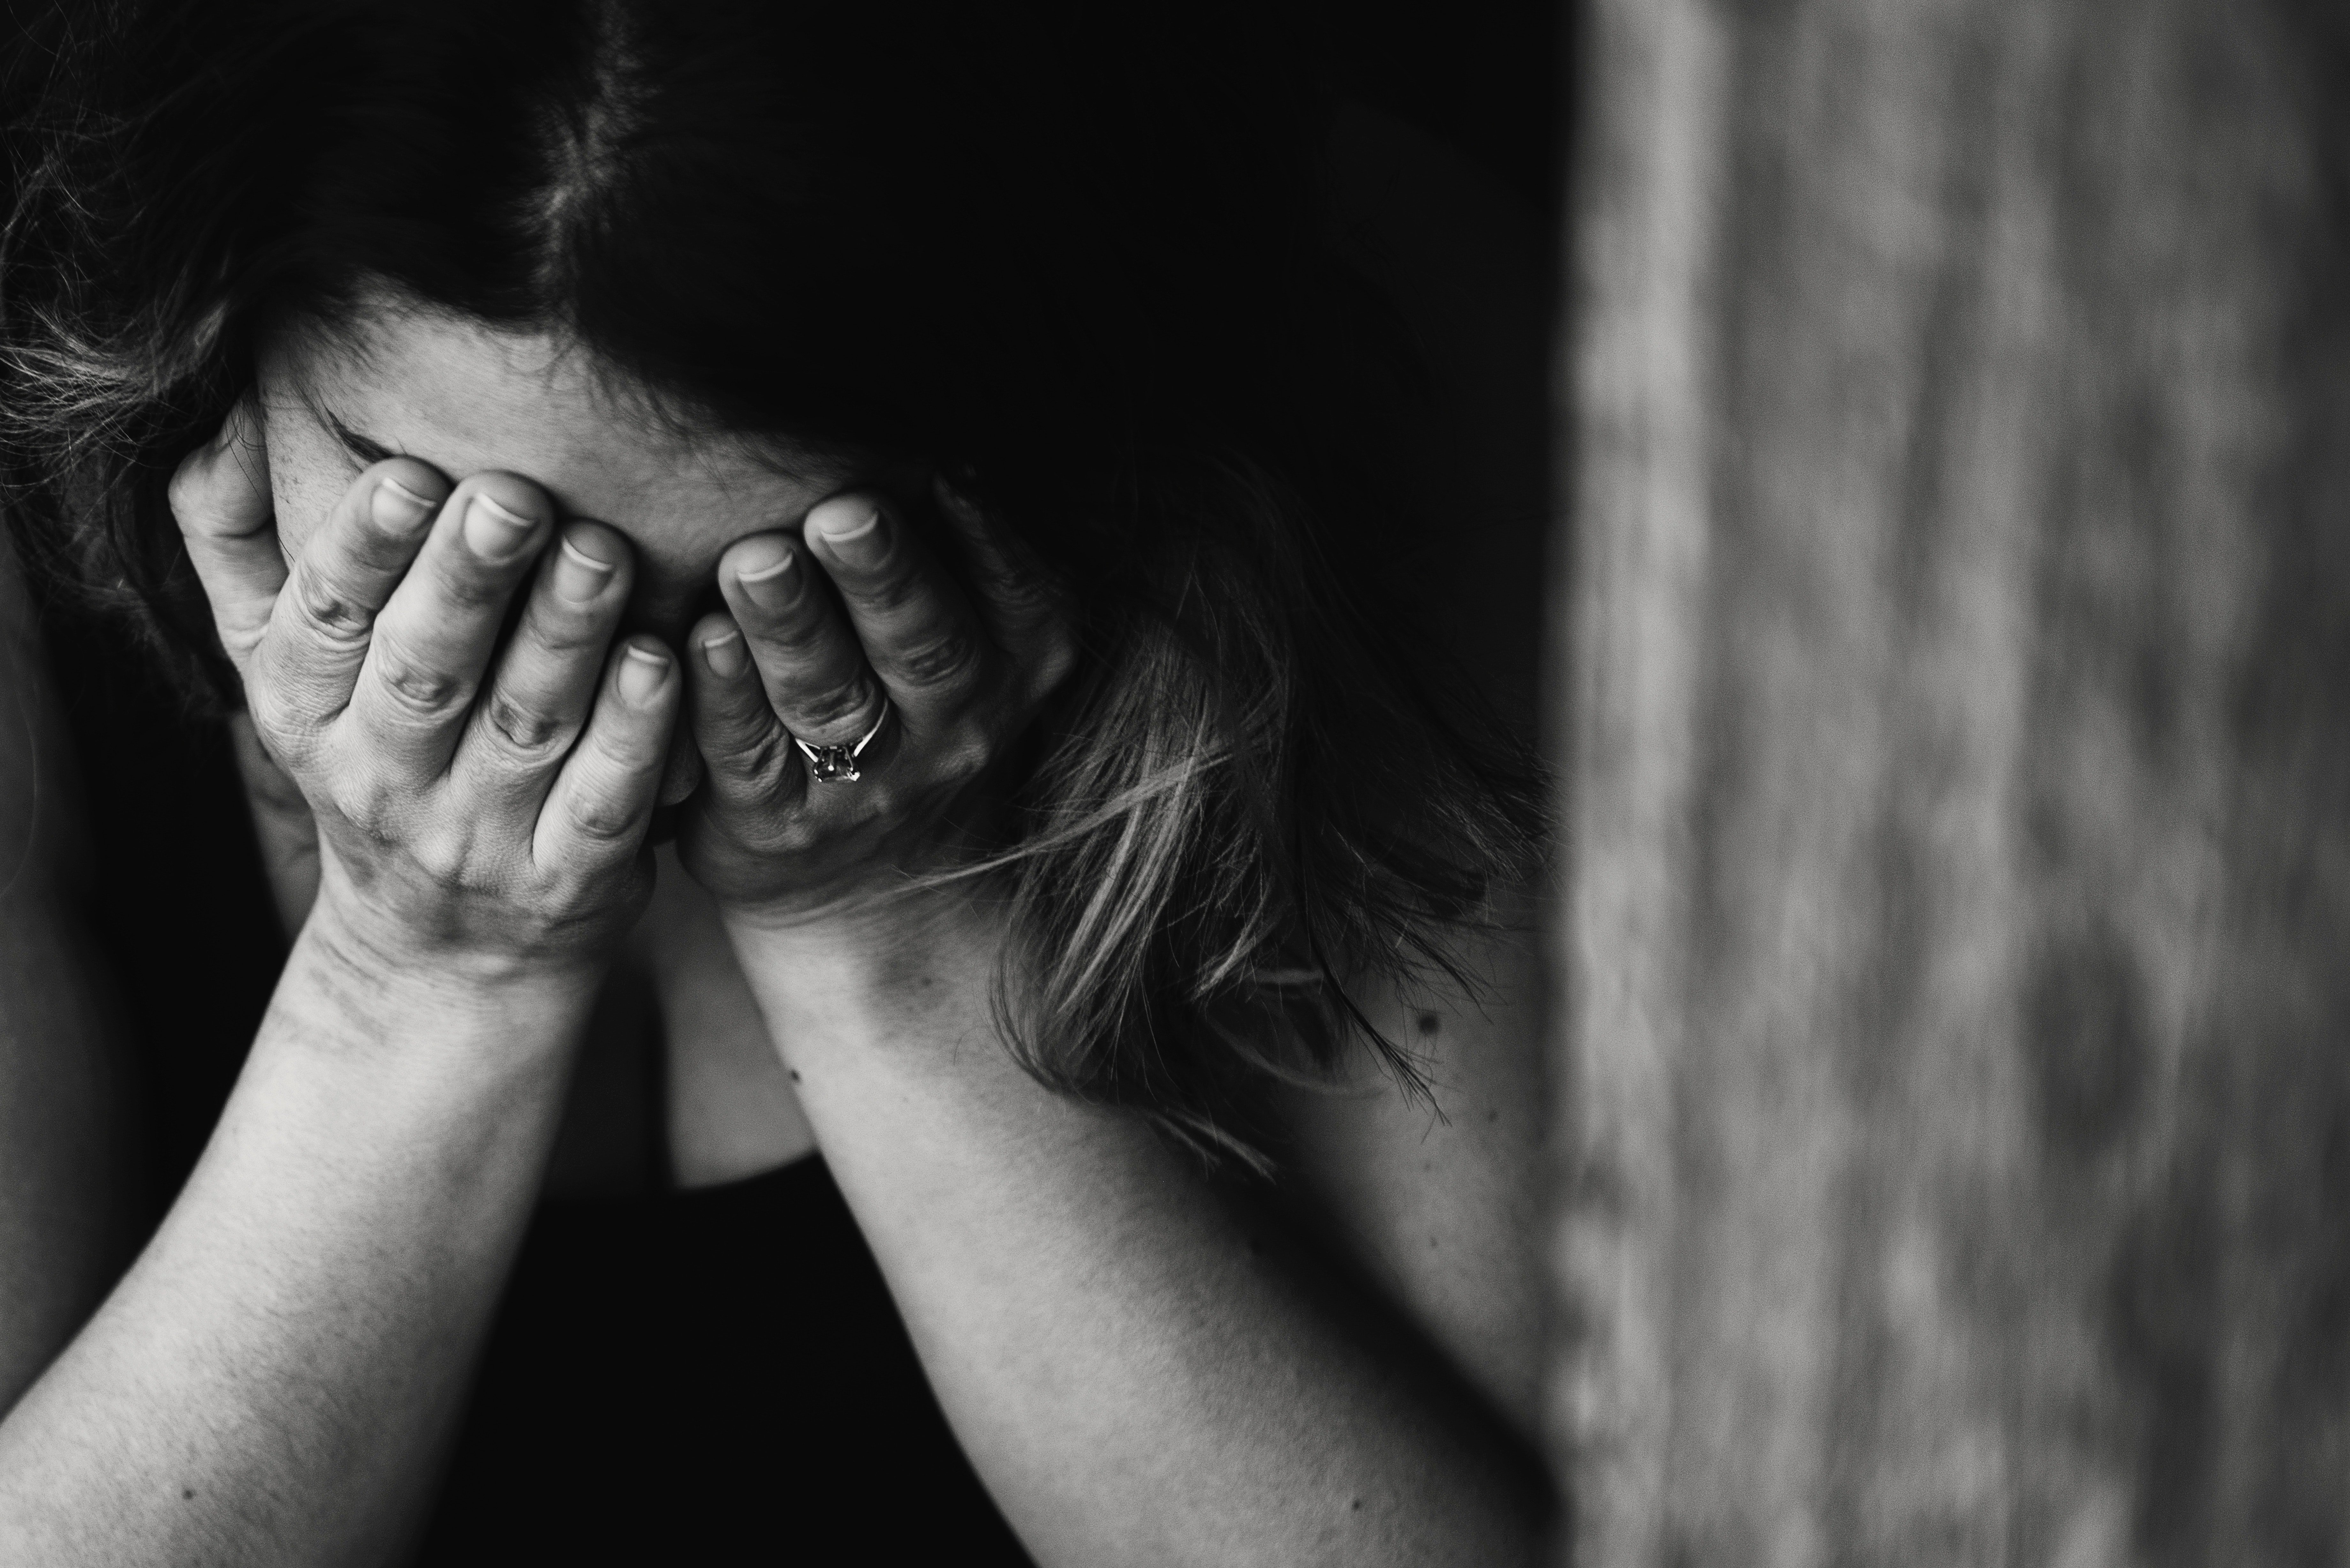 I was devastated when I learned Mark lied to me   Photo: Pexels